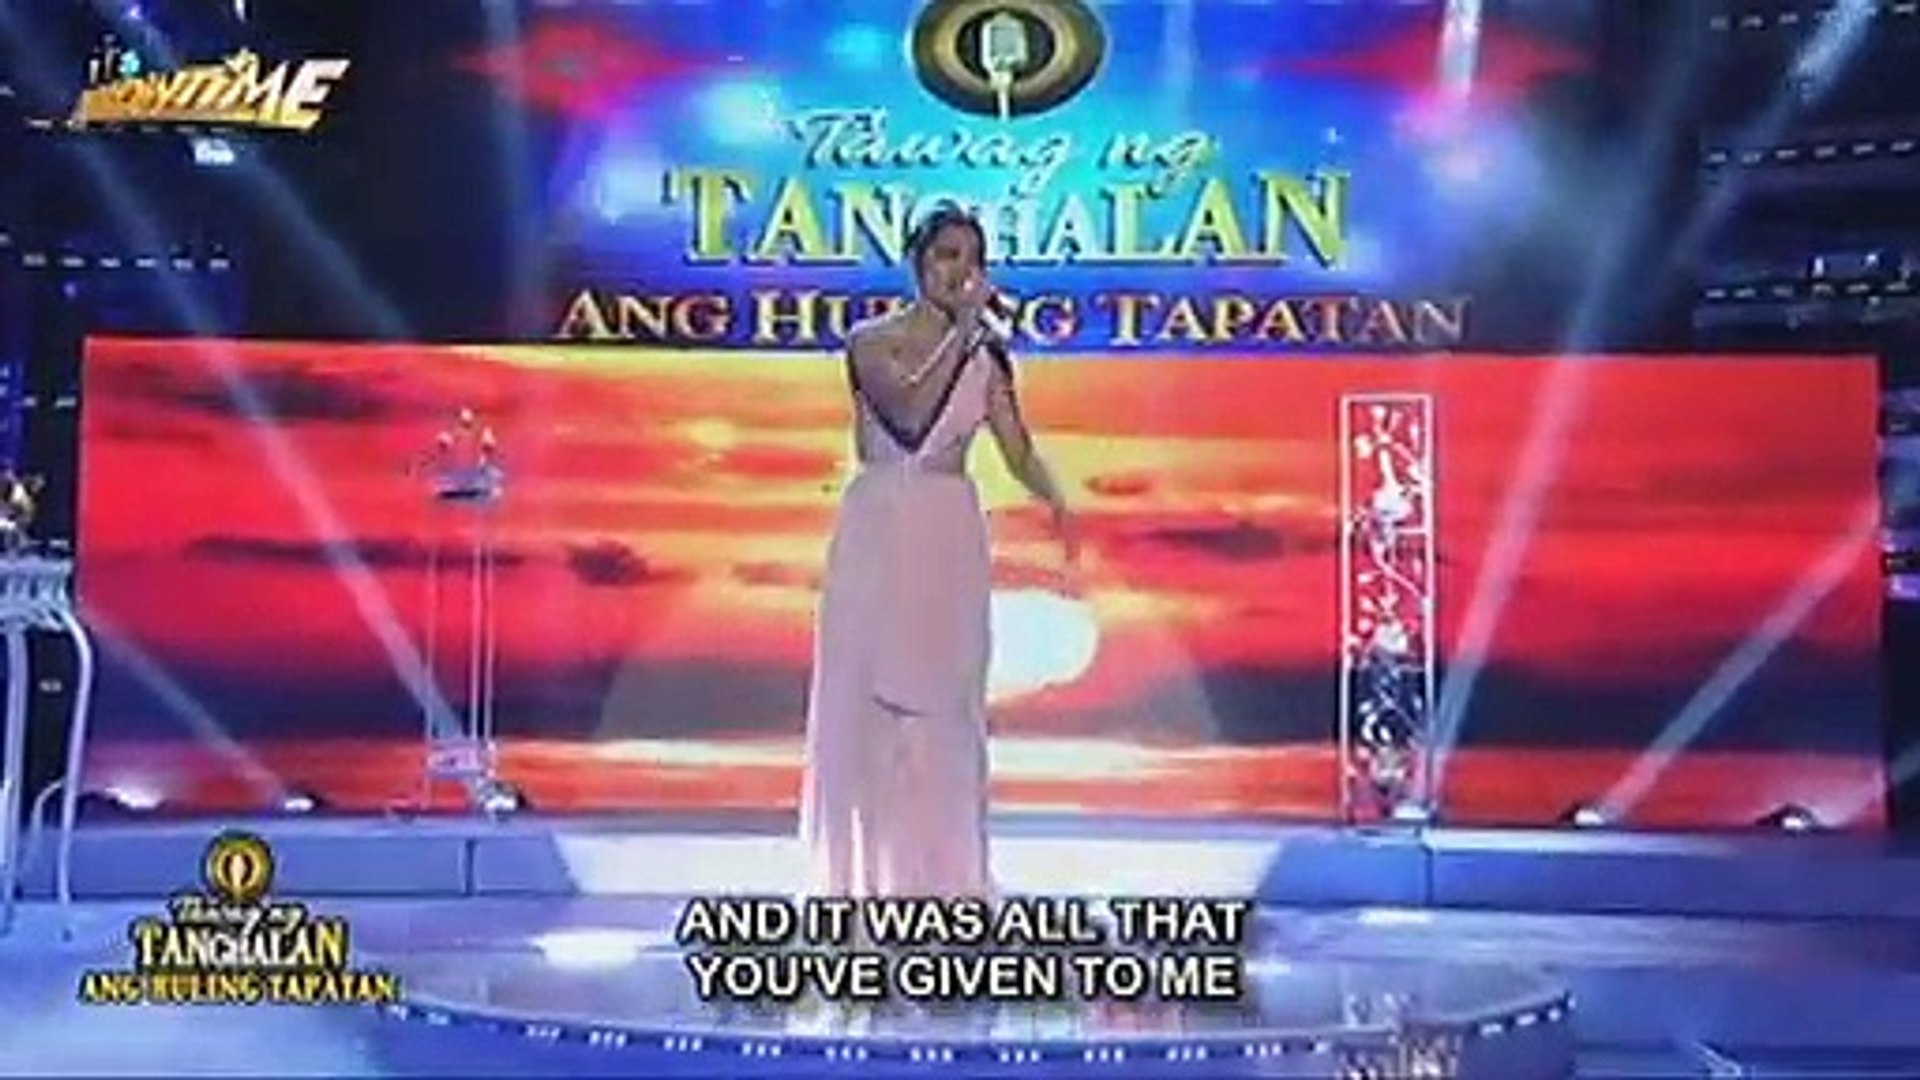 TNT Ang Huling Tapatan Day 5: Grand finalist Eumee Capile sings Mariah Carey's Vision Of Love